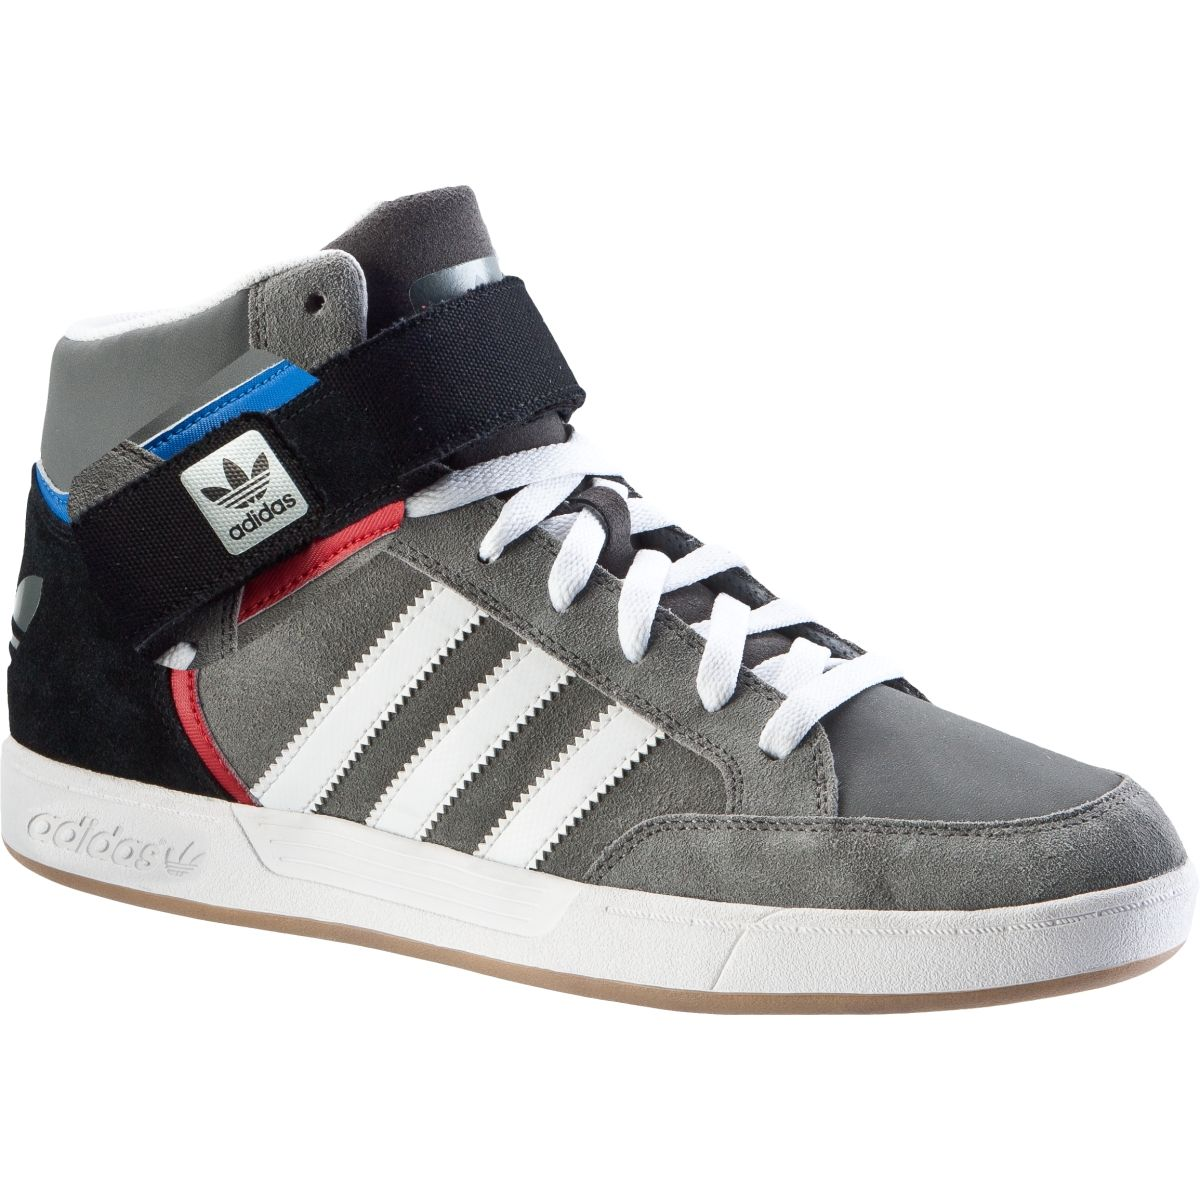 adidas varial mid skate shoes mens sneaks. Black Bedroom Furniture Sets. Home Design Ideas